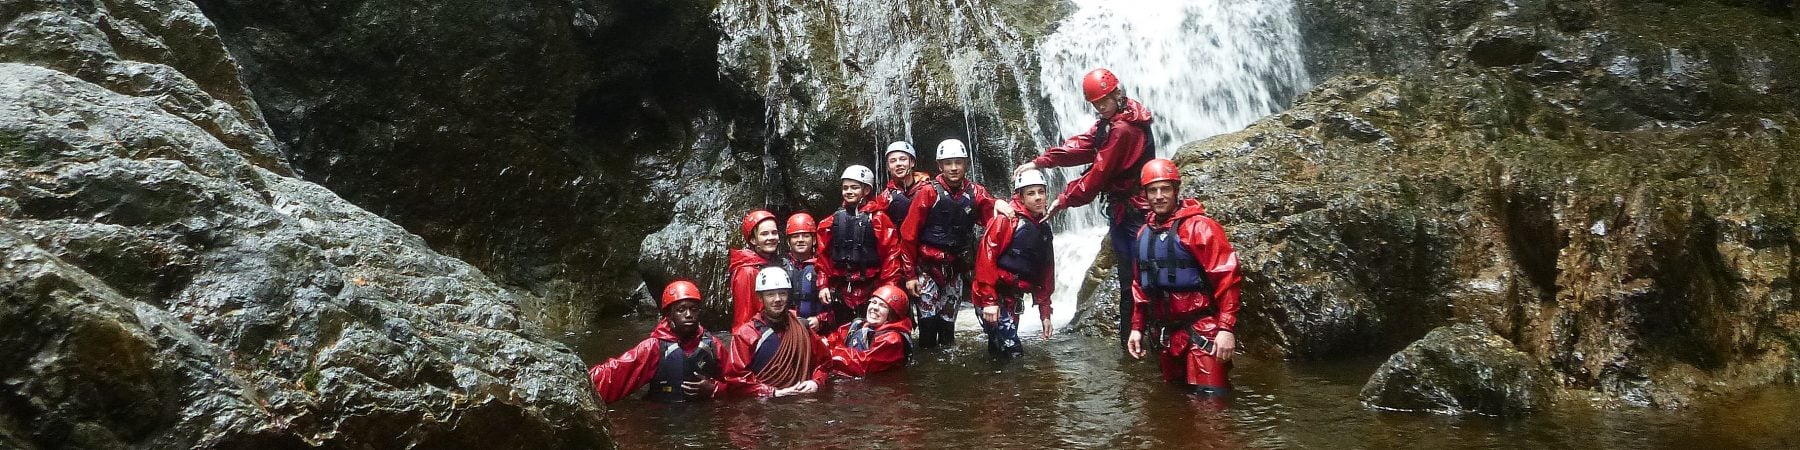 Group below waterfall in river, gorge scramble activity Snowdonia